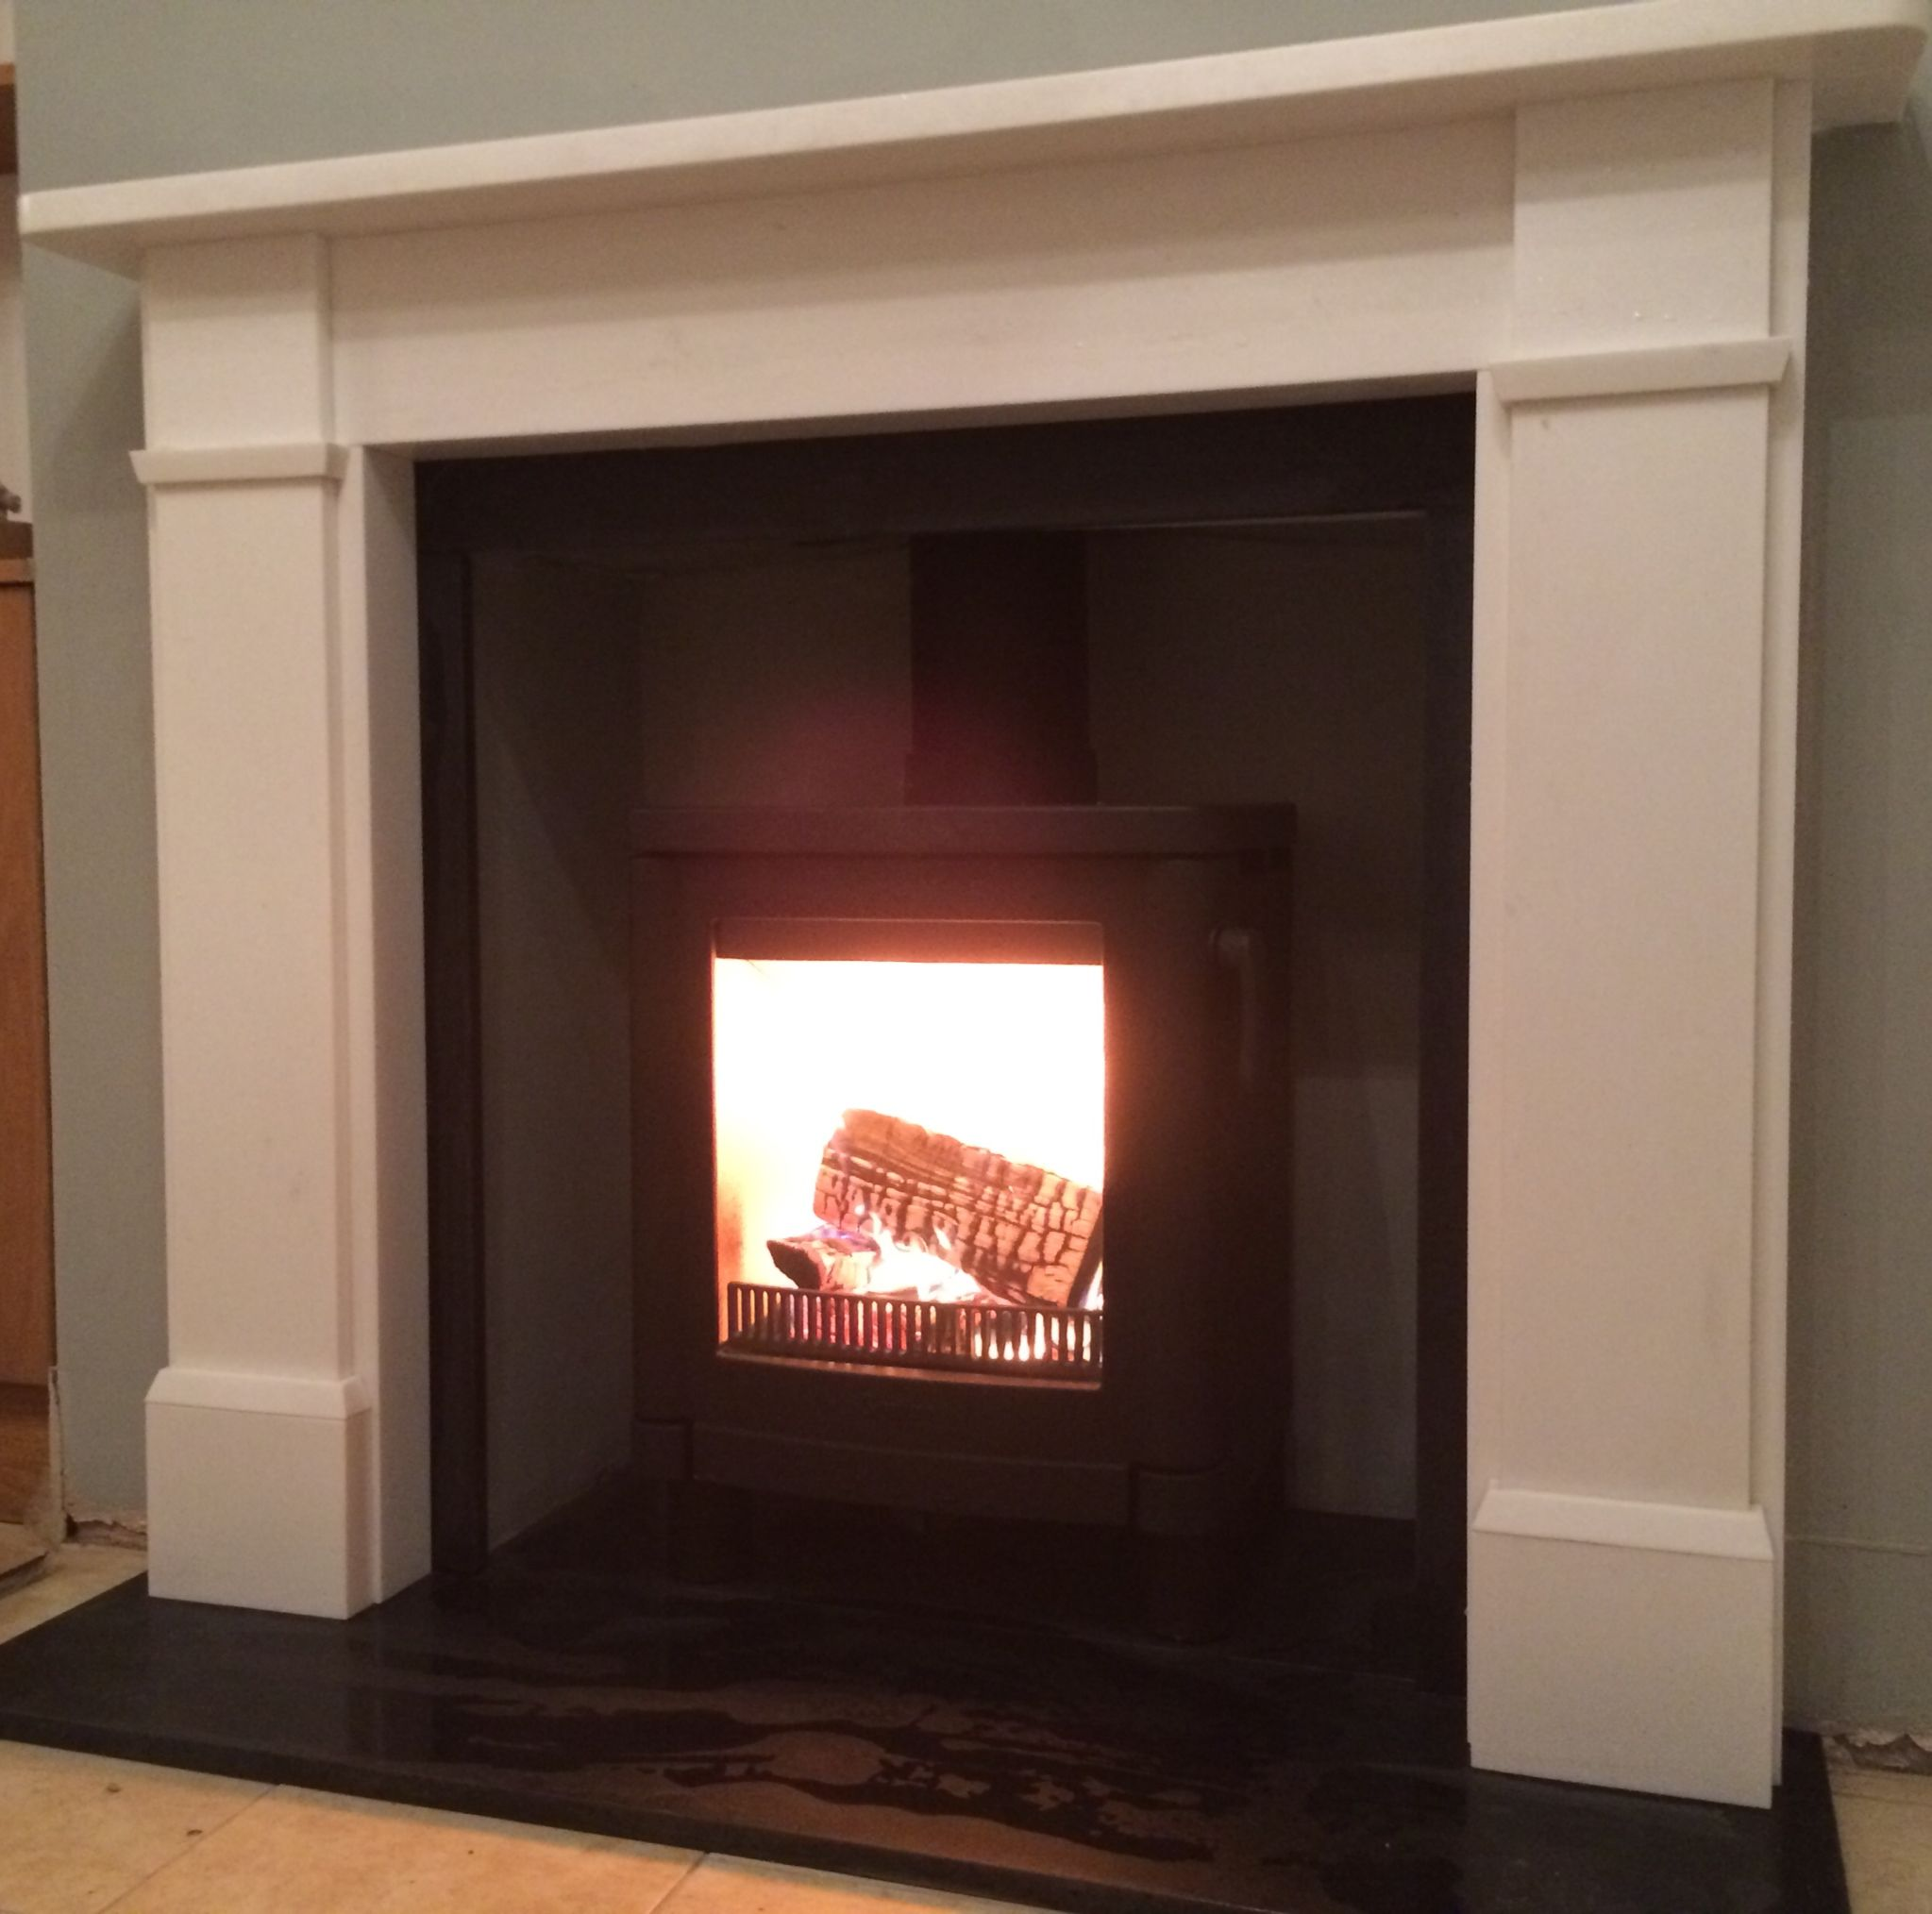 Contura 51l Wood Burning Stove In Black Supplied By Www Topstak Co